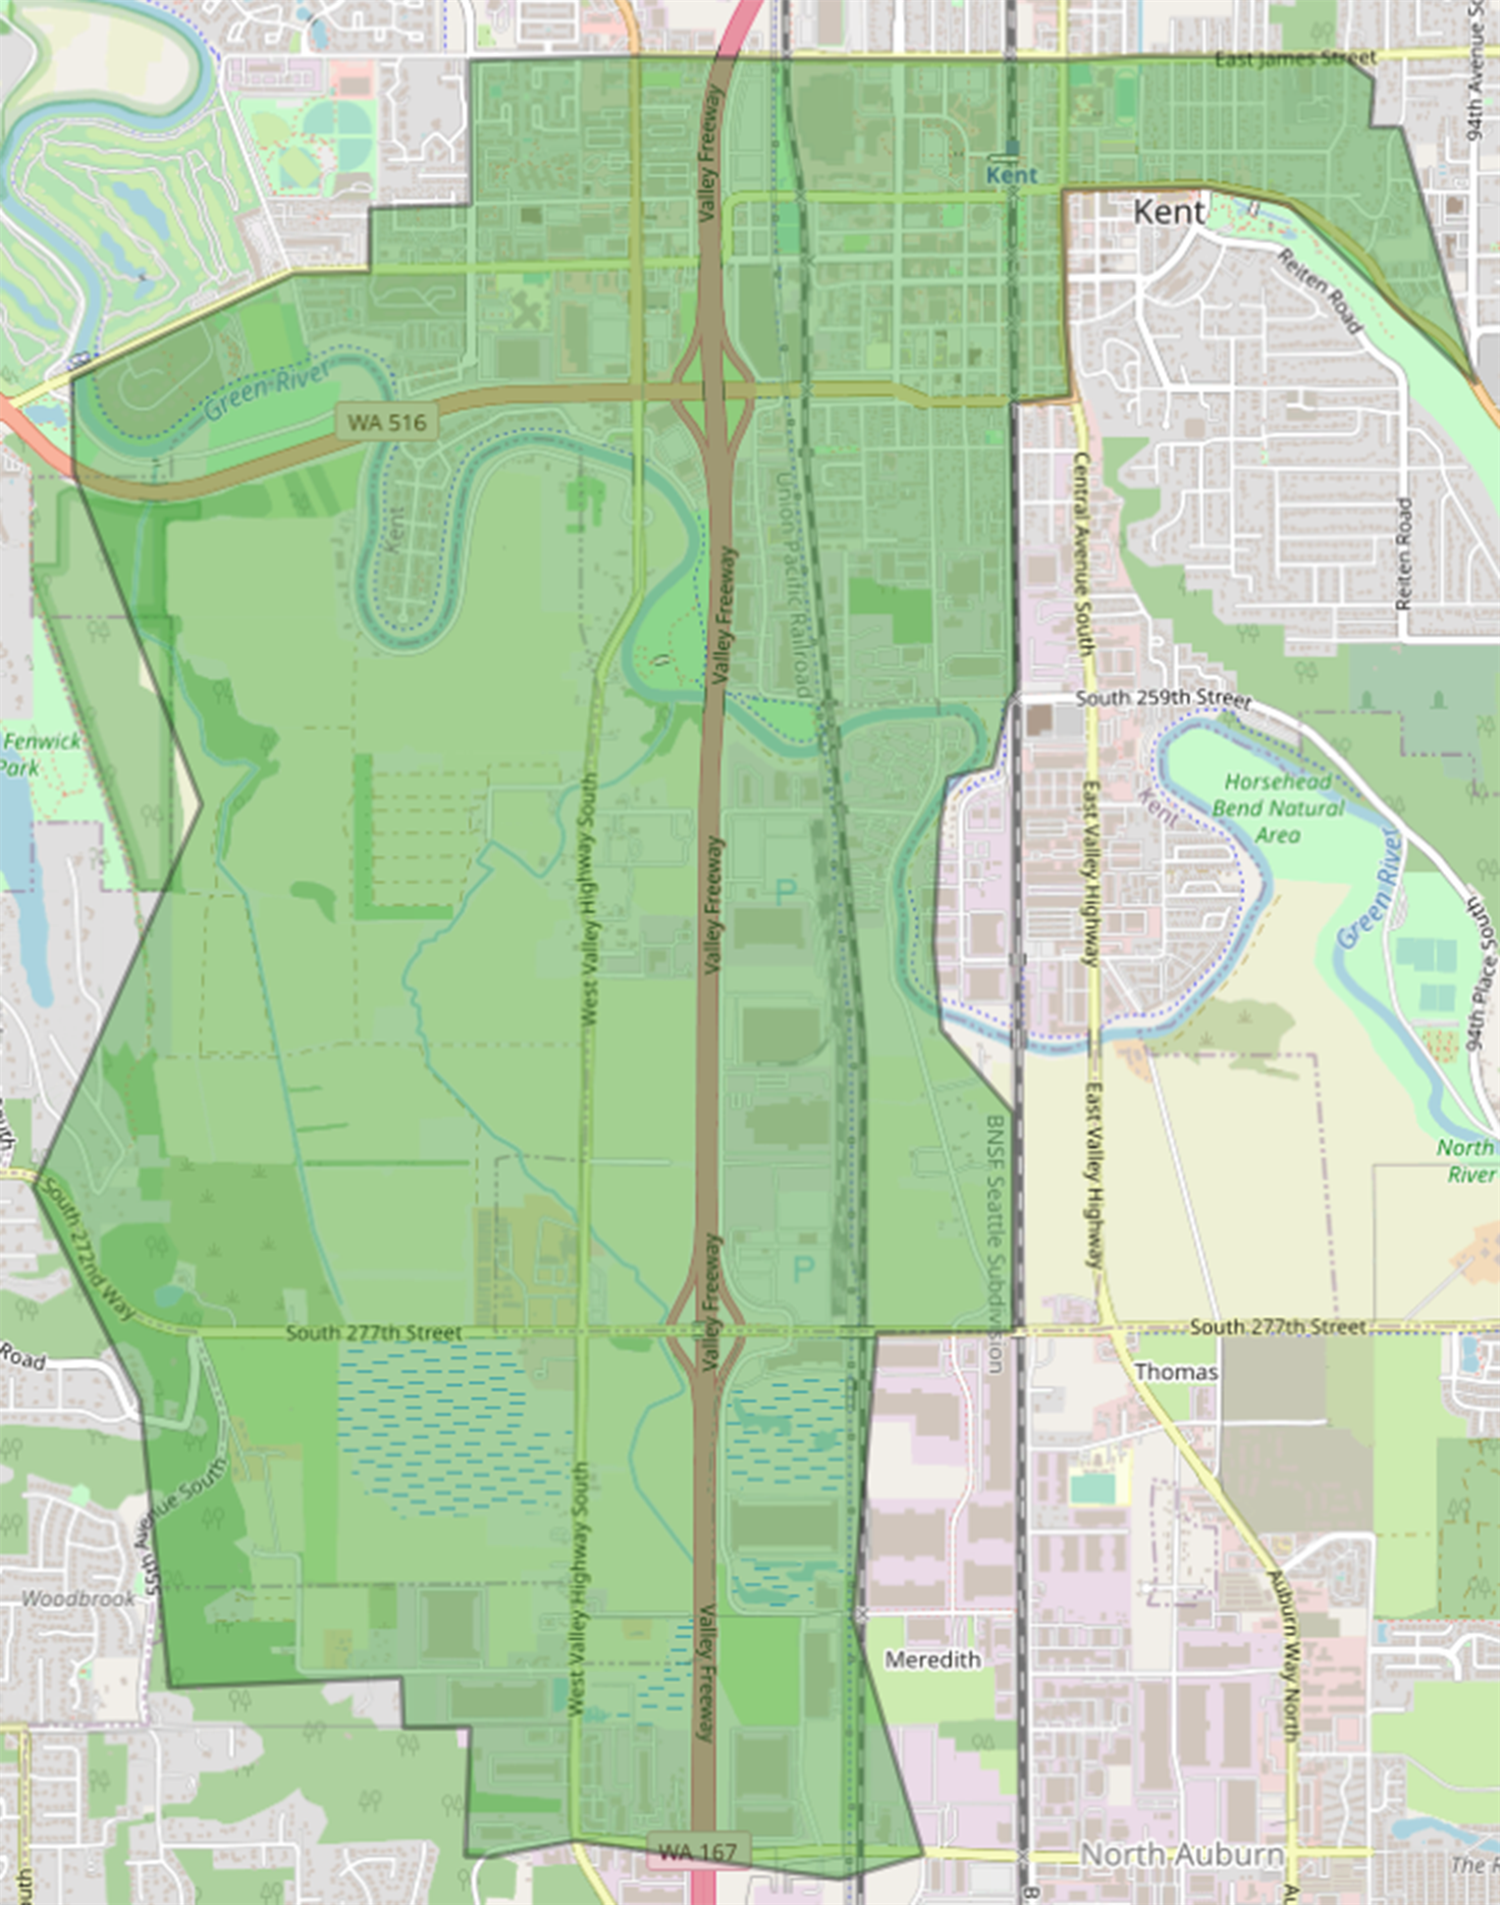 Final proposed new Kent Elementary boundary map